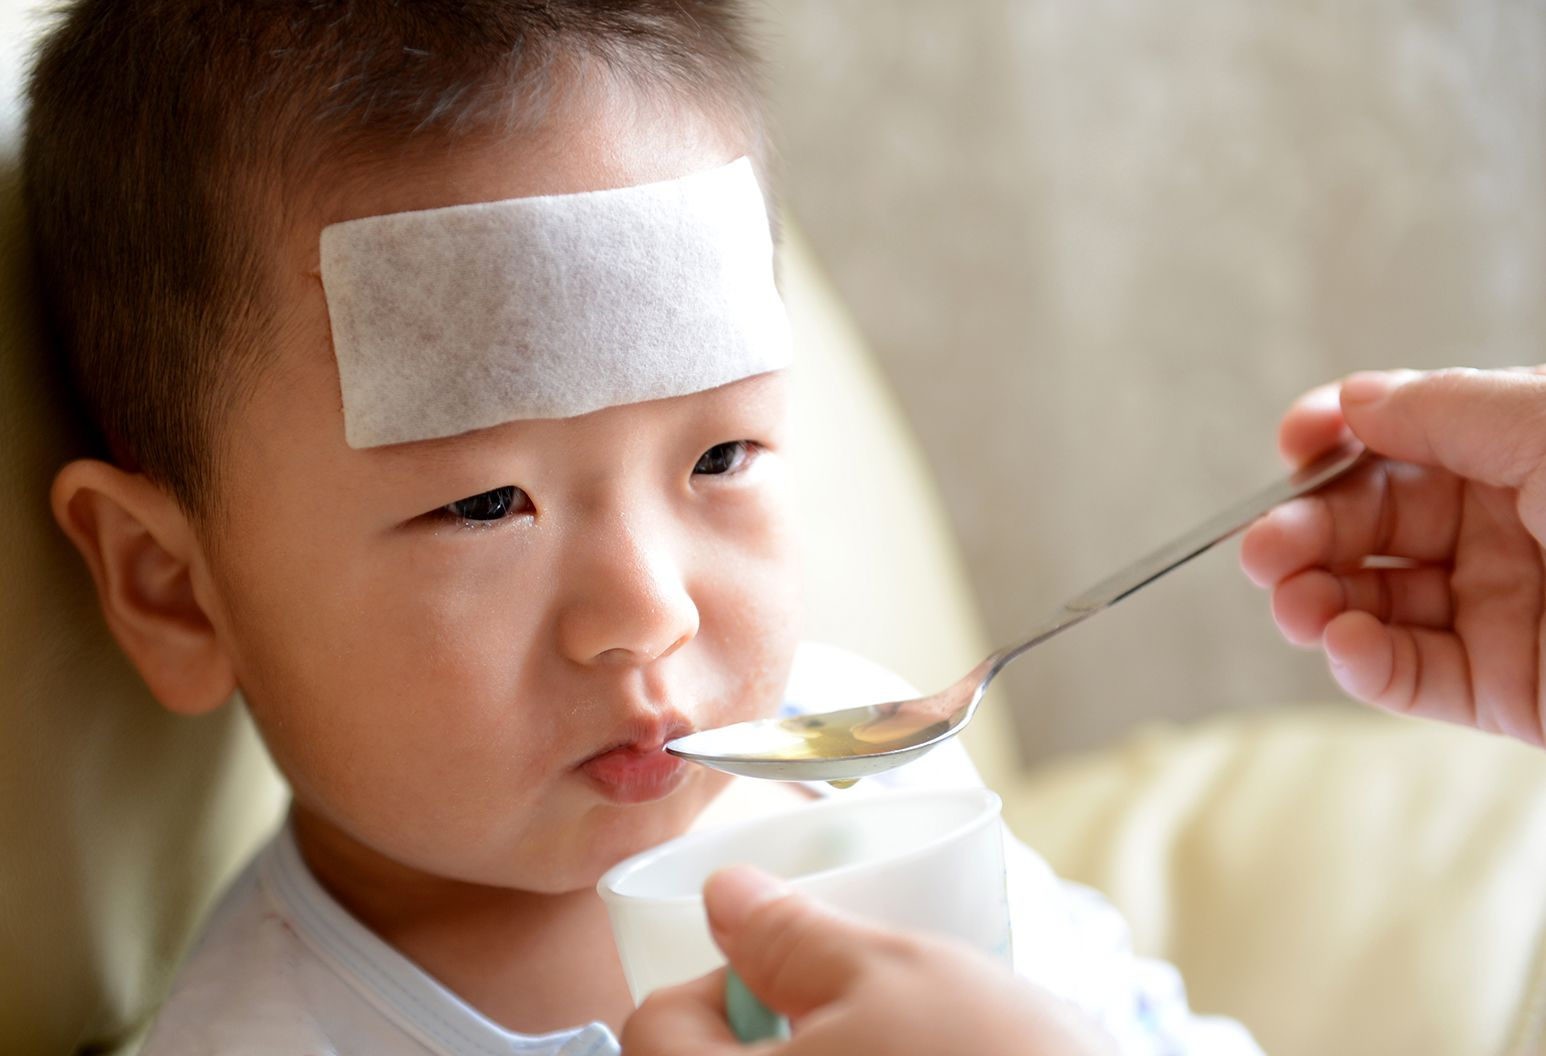 A 4 year old boy sits in bed with a cold compress on his forehead and as a teaspoon of tea is spooned into his mouth.